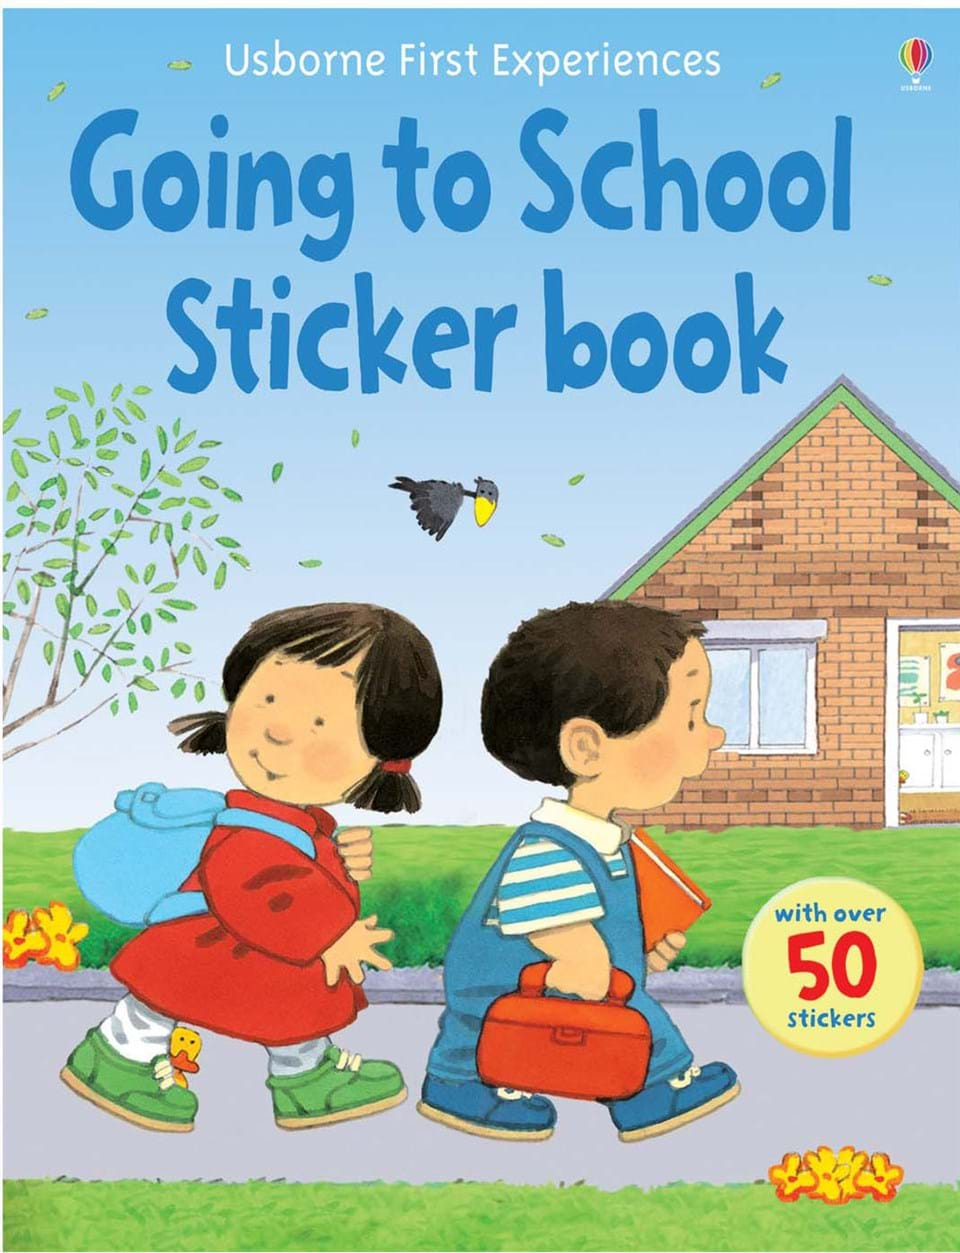 going to school books for preschoolers going to school sticker book at usborne children s books 984